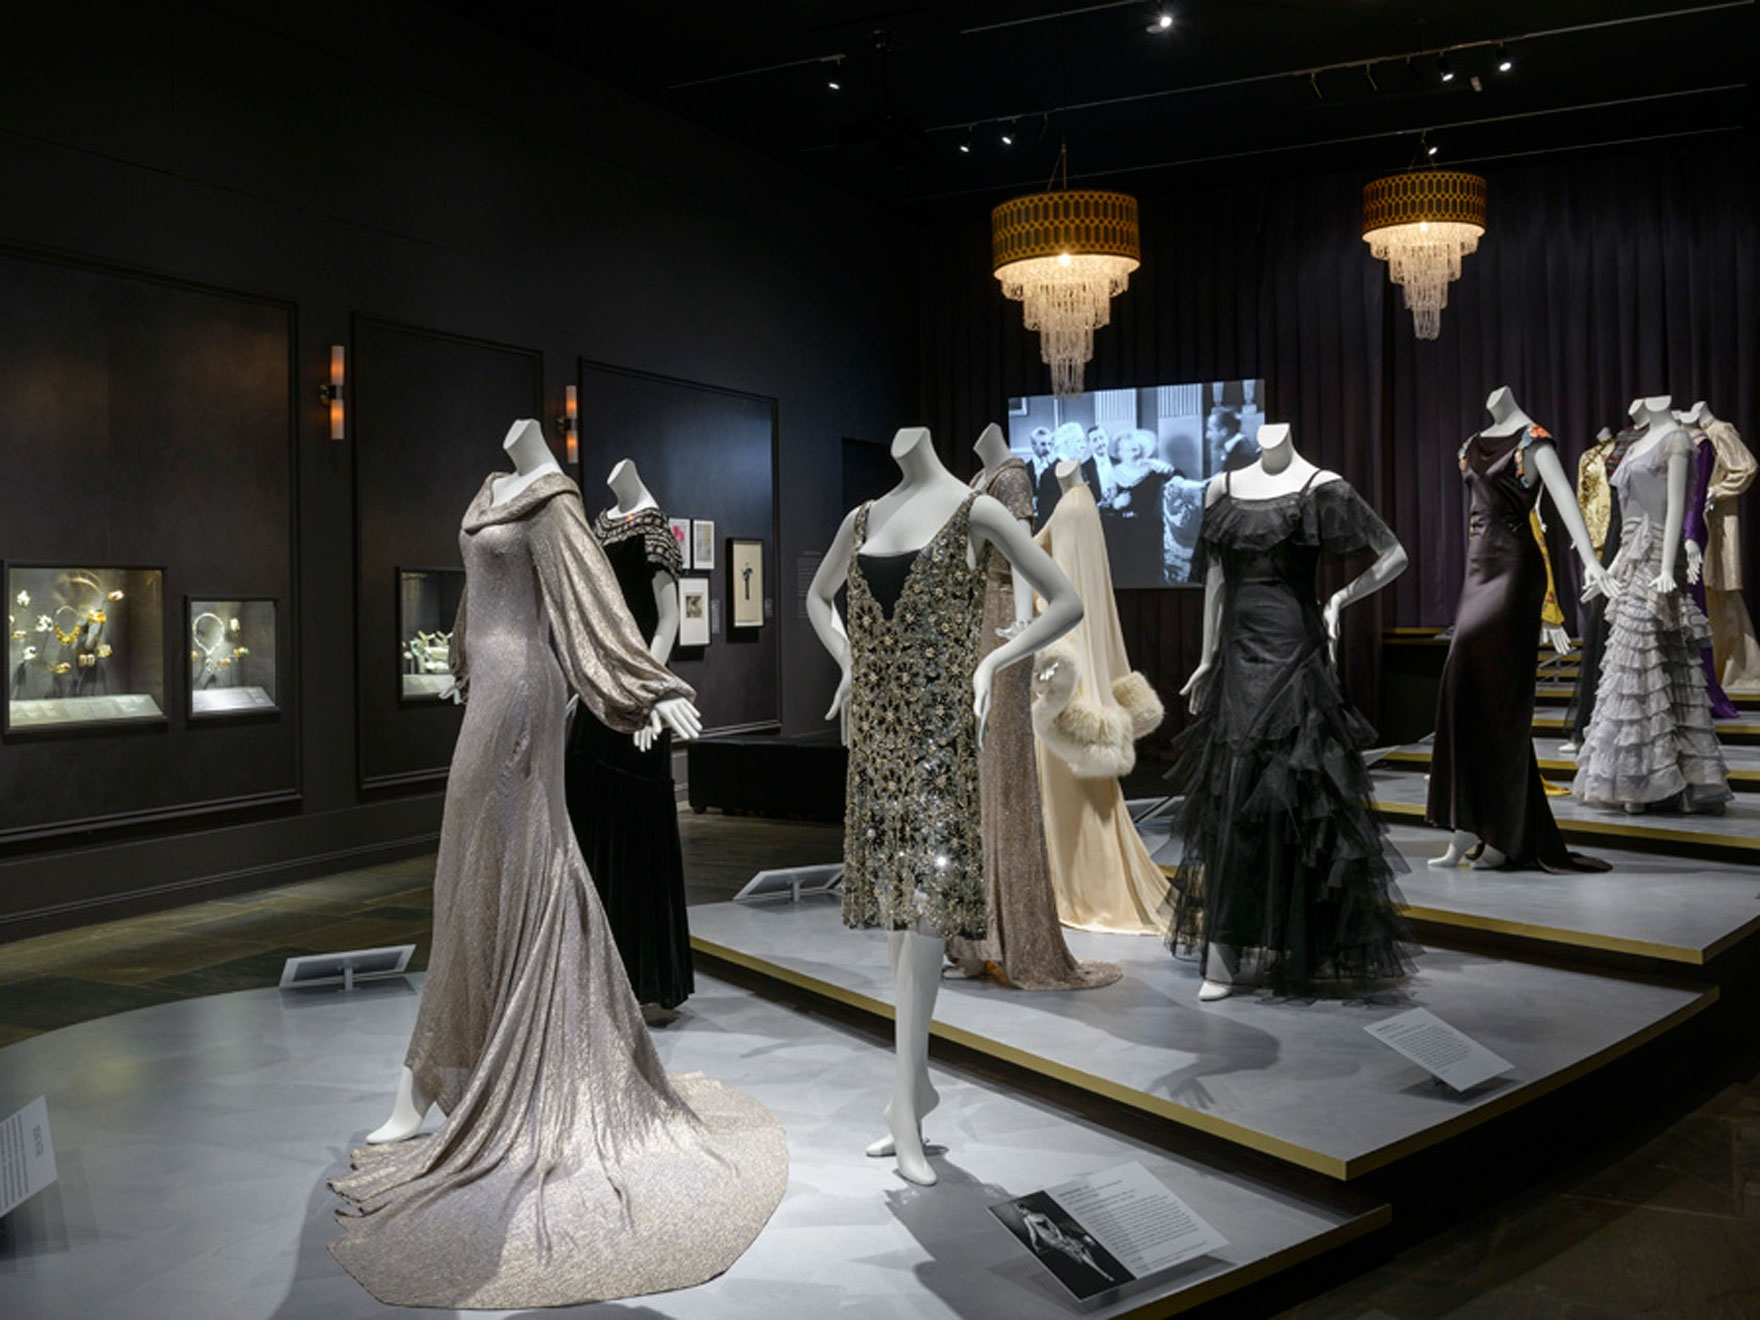 mannequins in gowns from 1930s and 1940s Hollywood stars